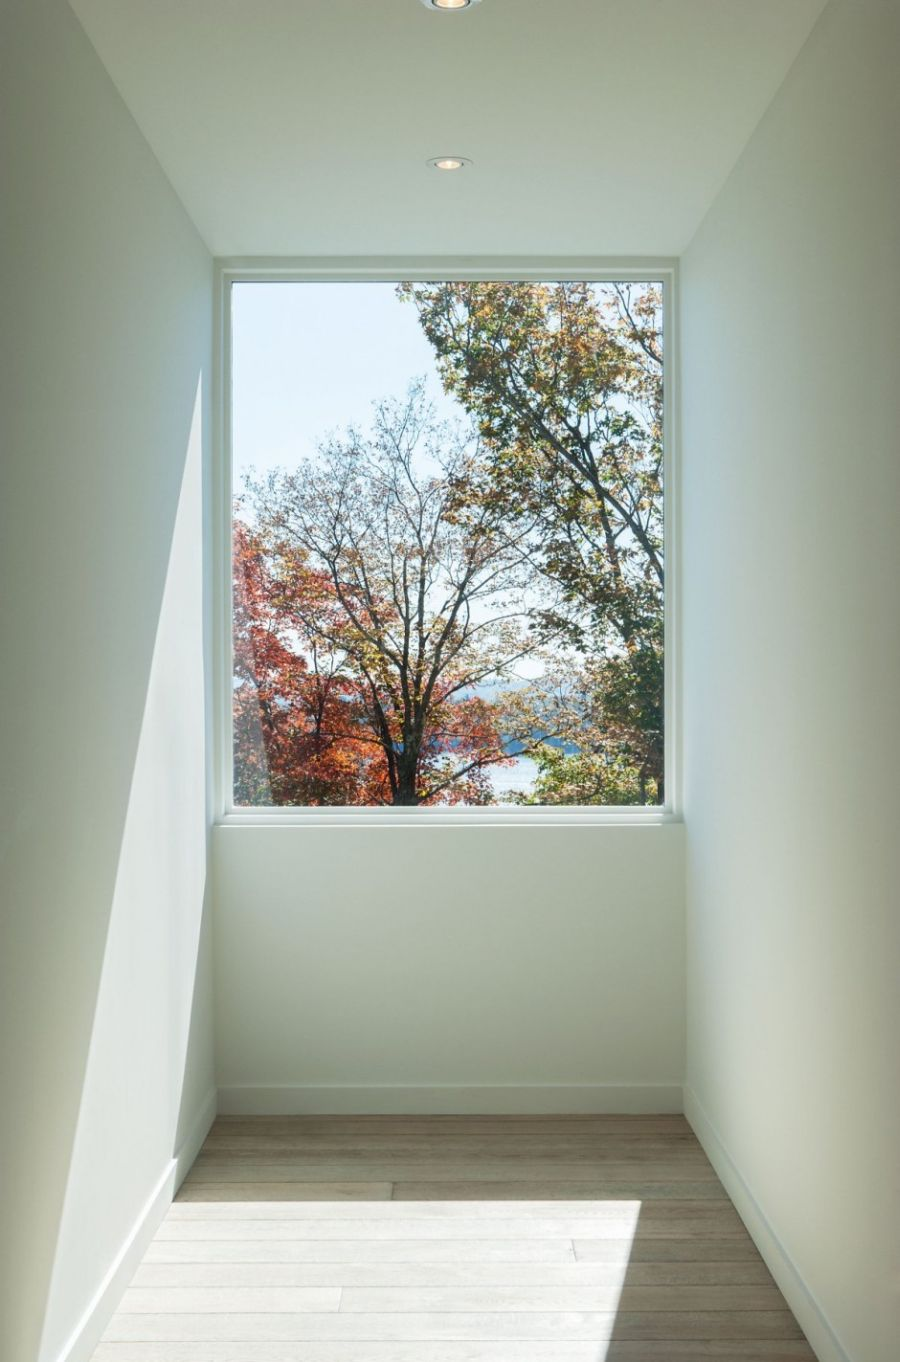 large glass windows with offer lovely views